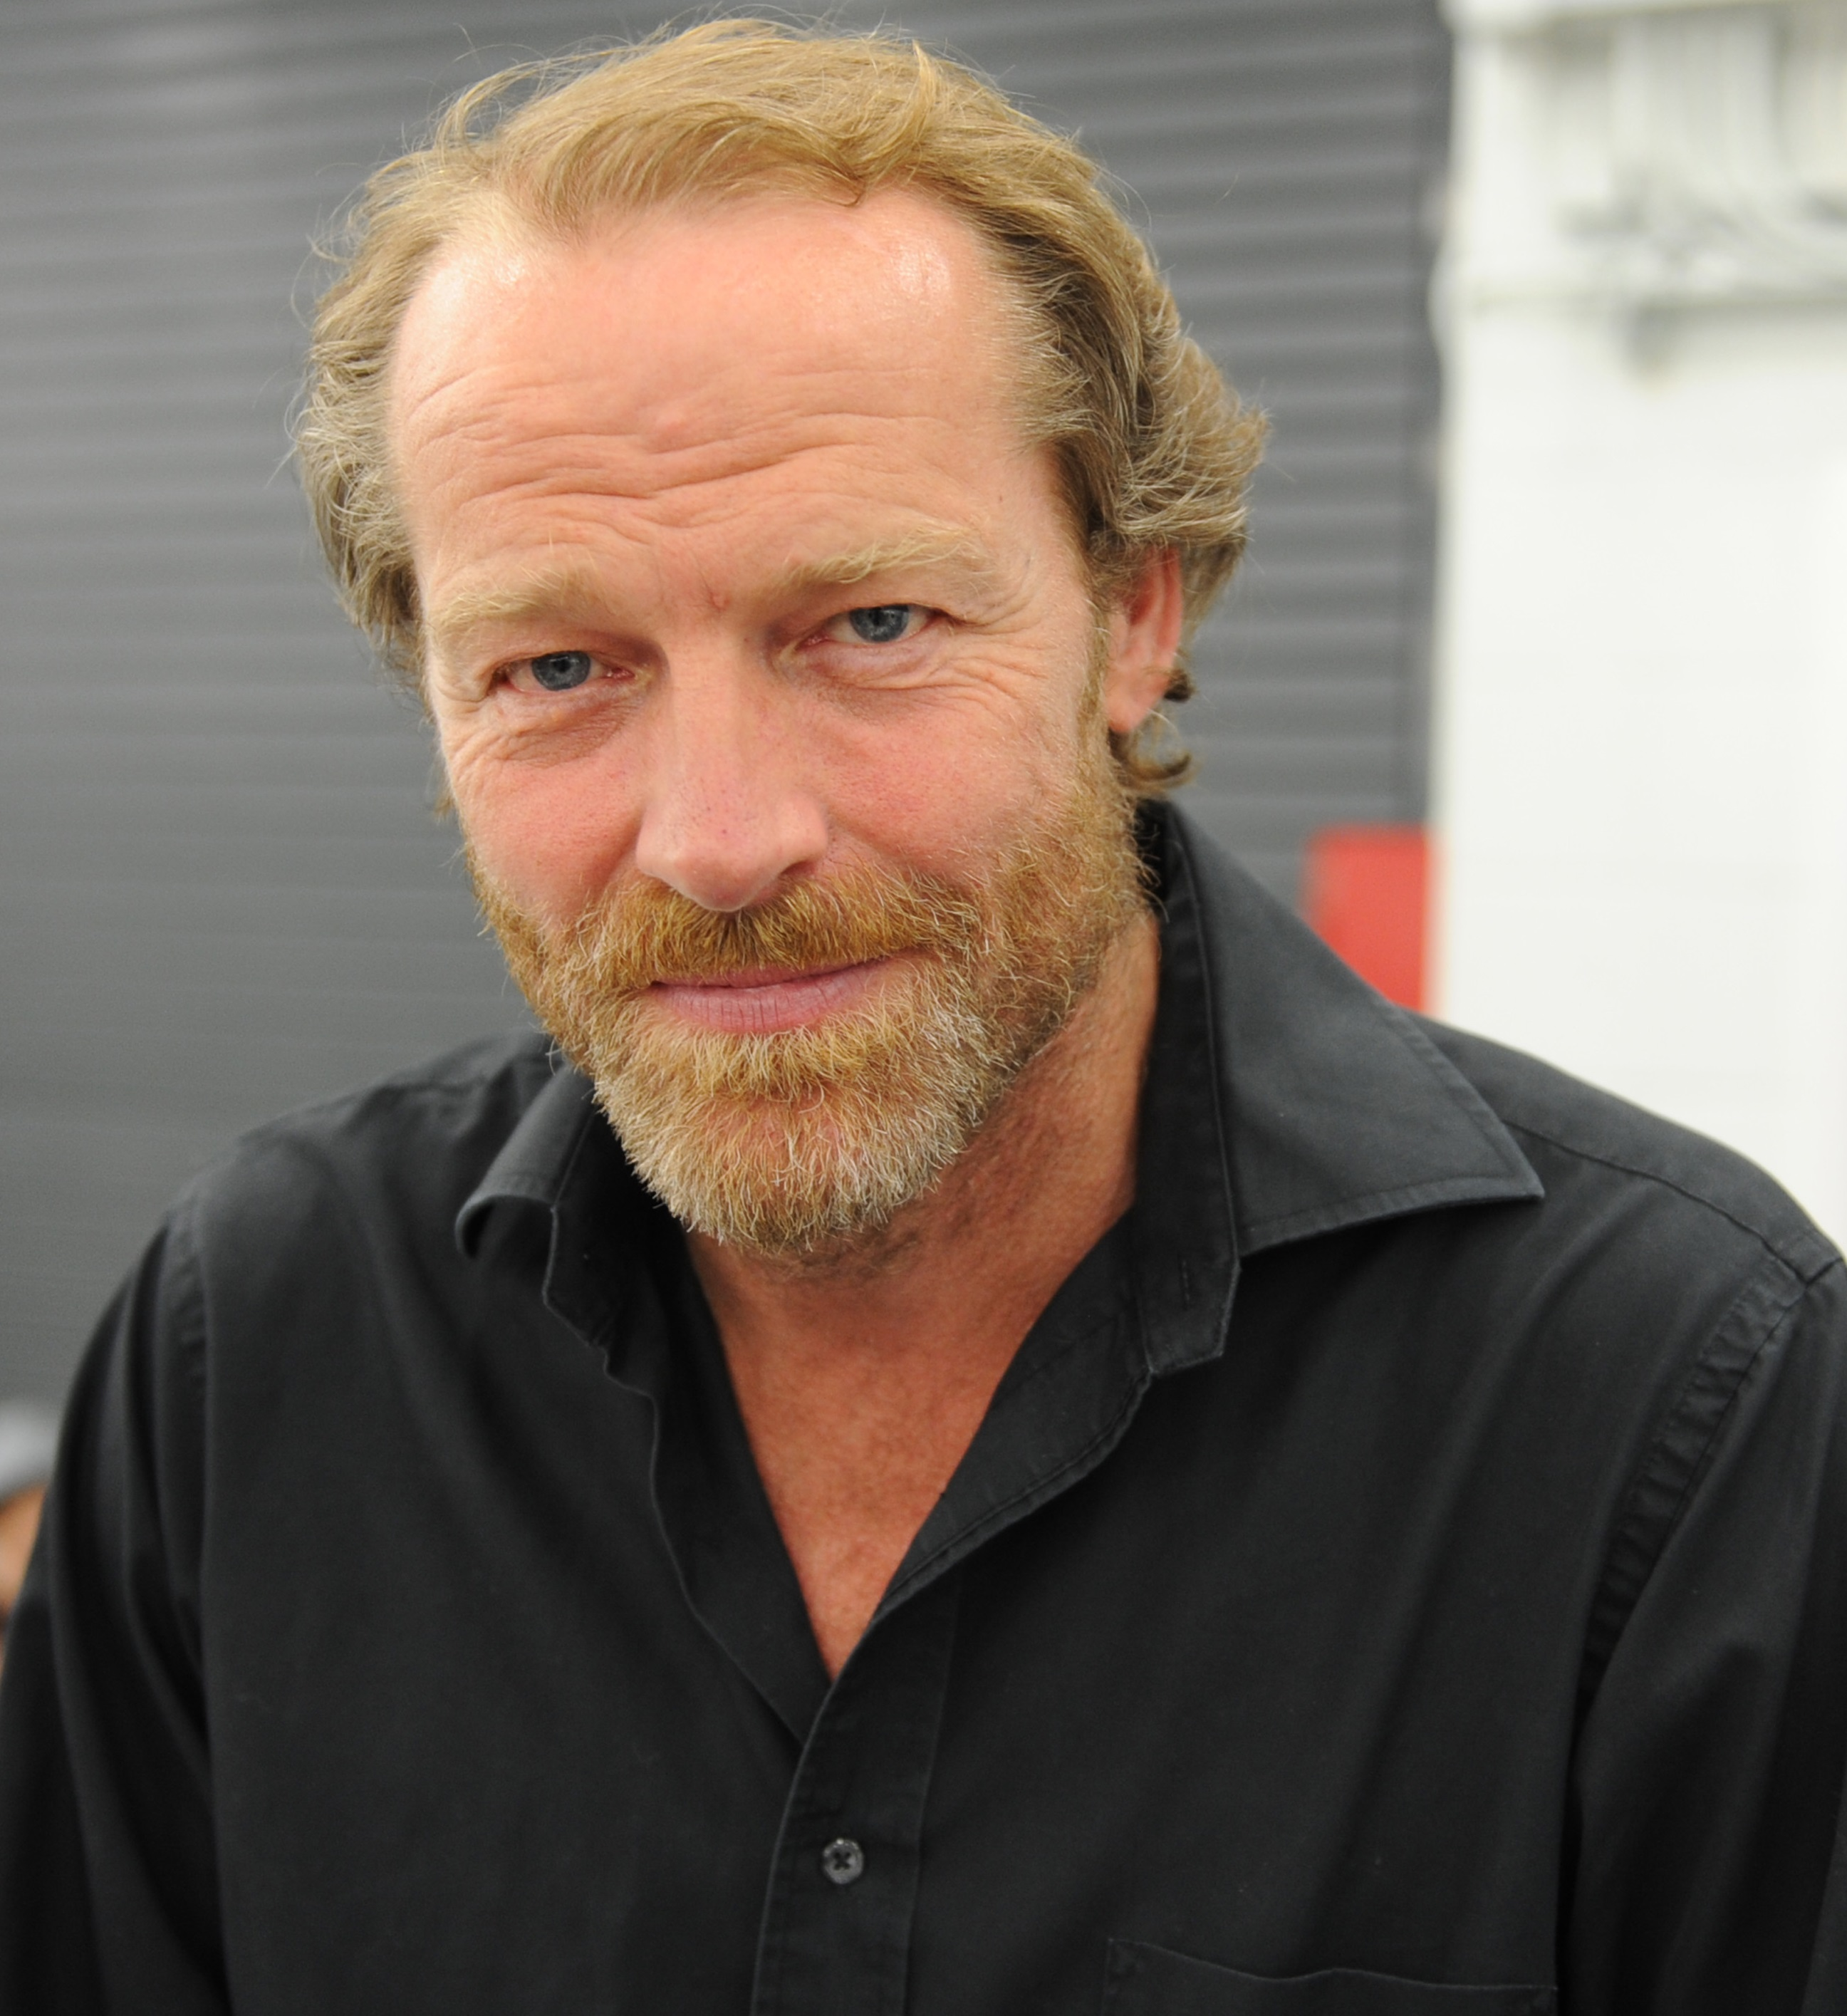 The 57-year old son of father (?) and mother(?) Iain Glen in 2018 photo. Iain Glen earned a  million dollar salary - leaving the net worth at 4 million in 2018